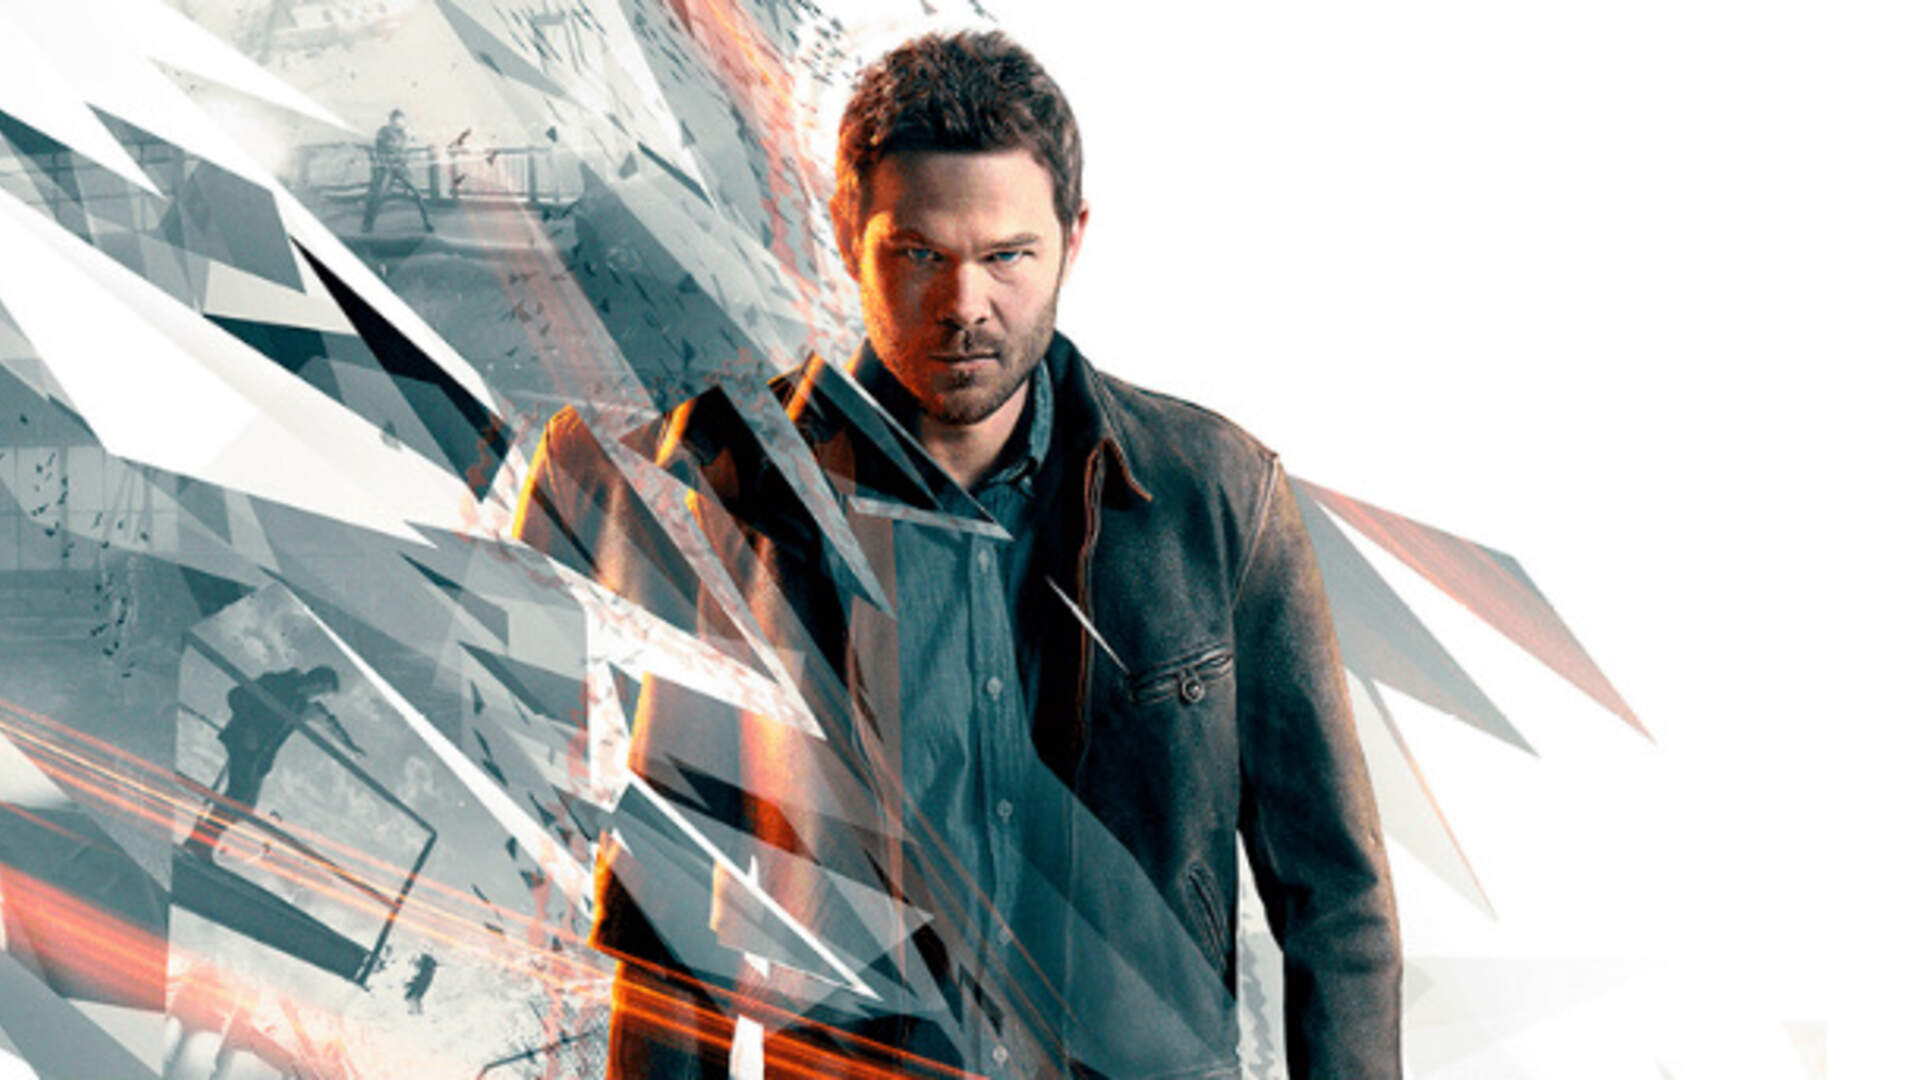 Xbox Game Pass Gets Quantum Break, Halo: Master Chief Collection in September